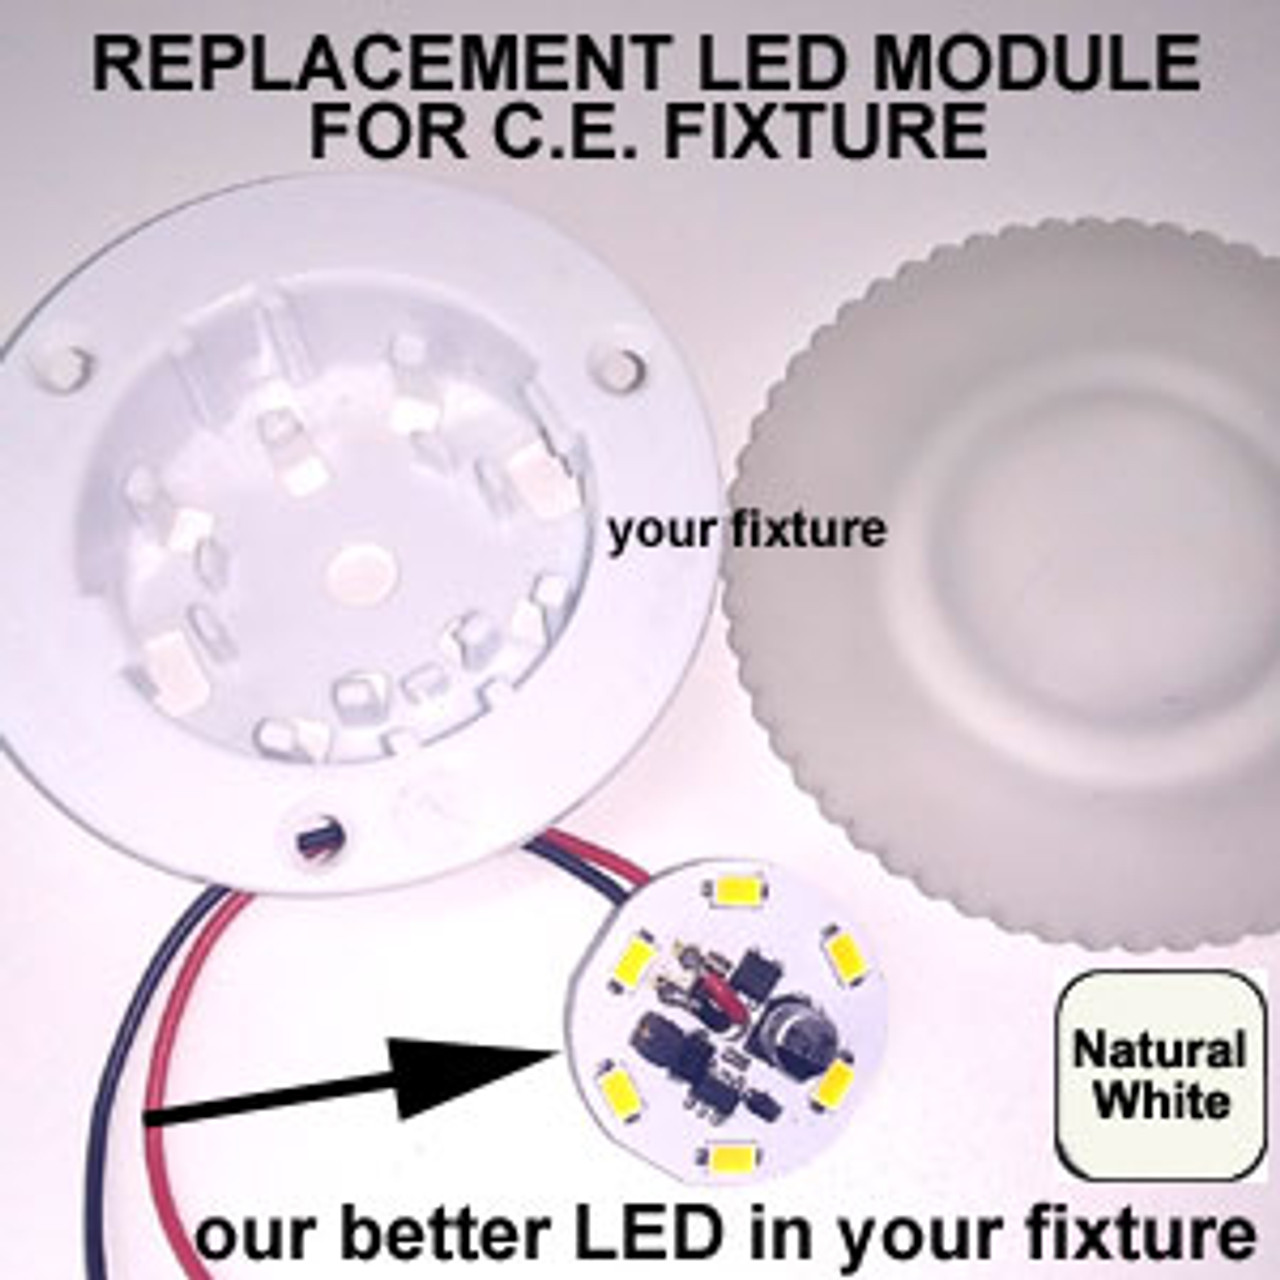 RETROFIT-6-5630-WIRE-CW Replacement for C.E. LED Fixture Cool White